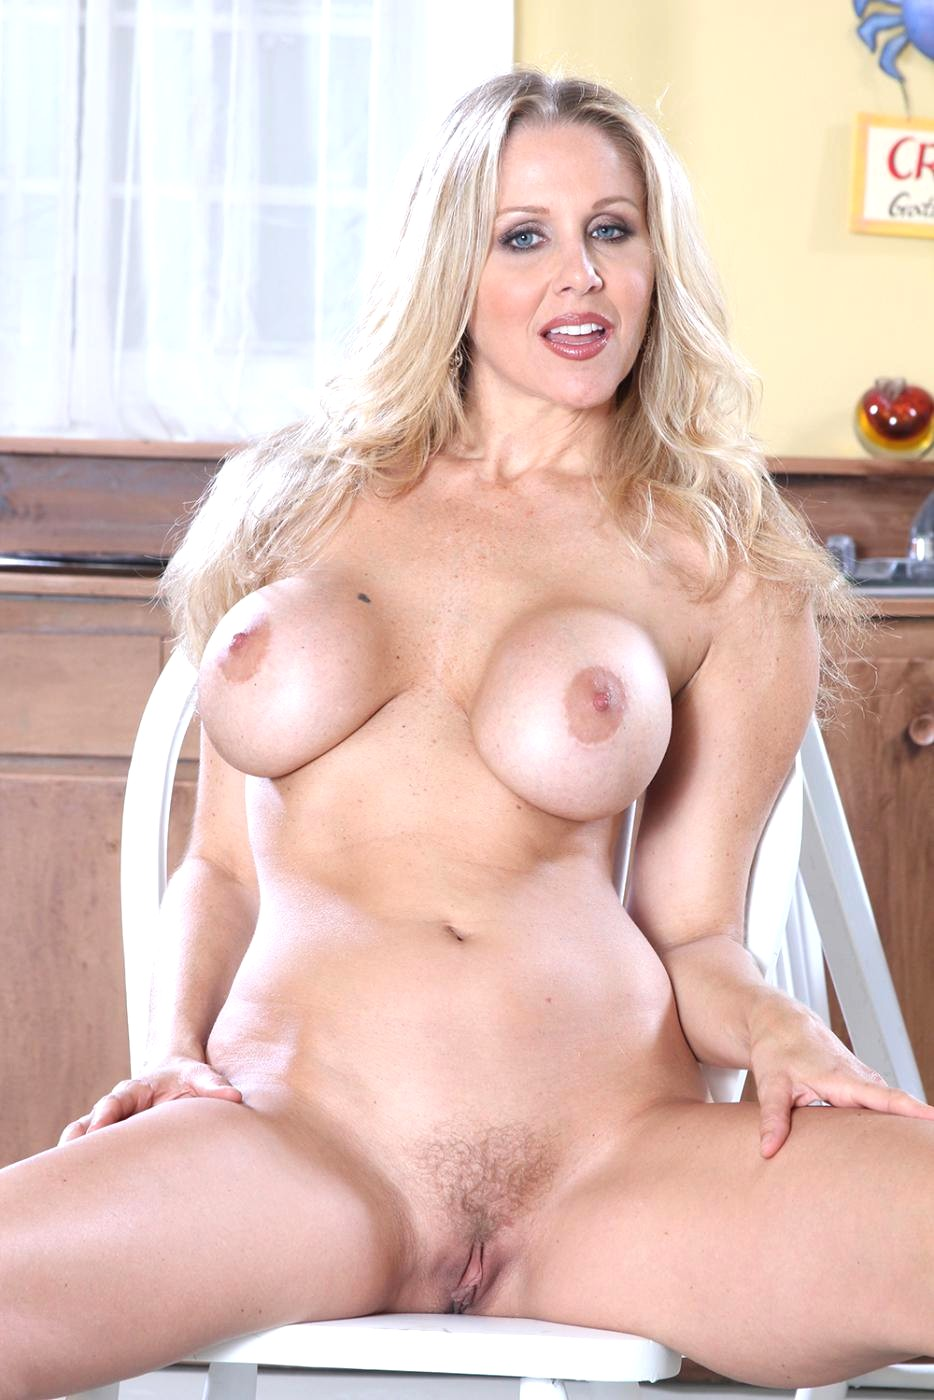 hustlermegapass julia ann tities hardcore naked woman free